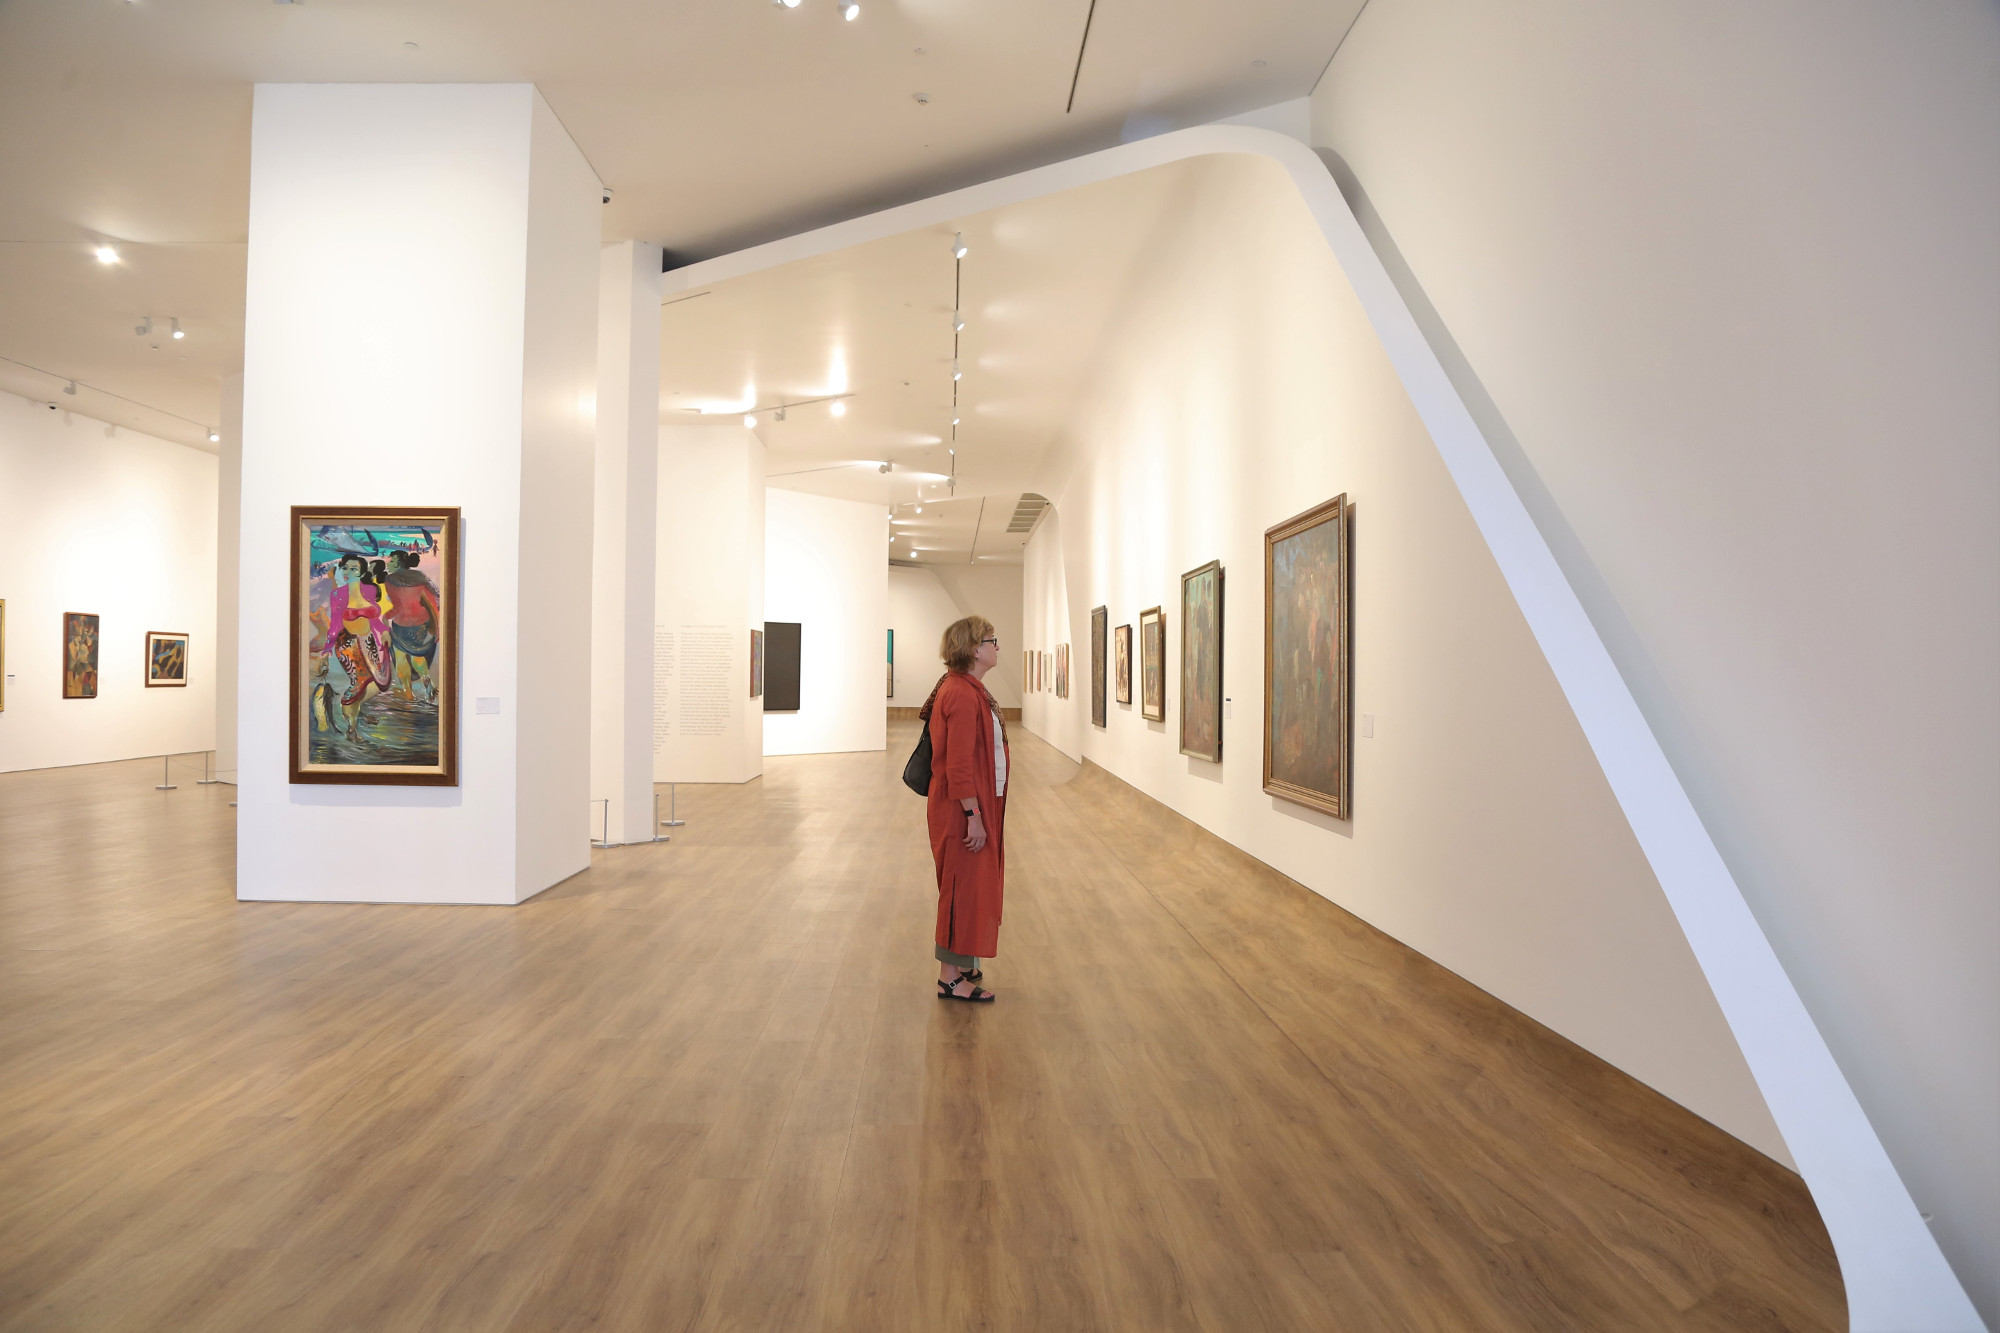 Indonesia's first modern art museum opens in Jakarta ⋆ New ...